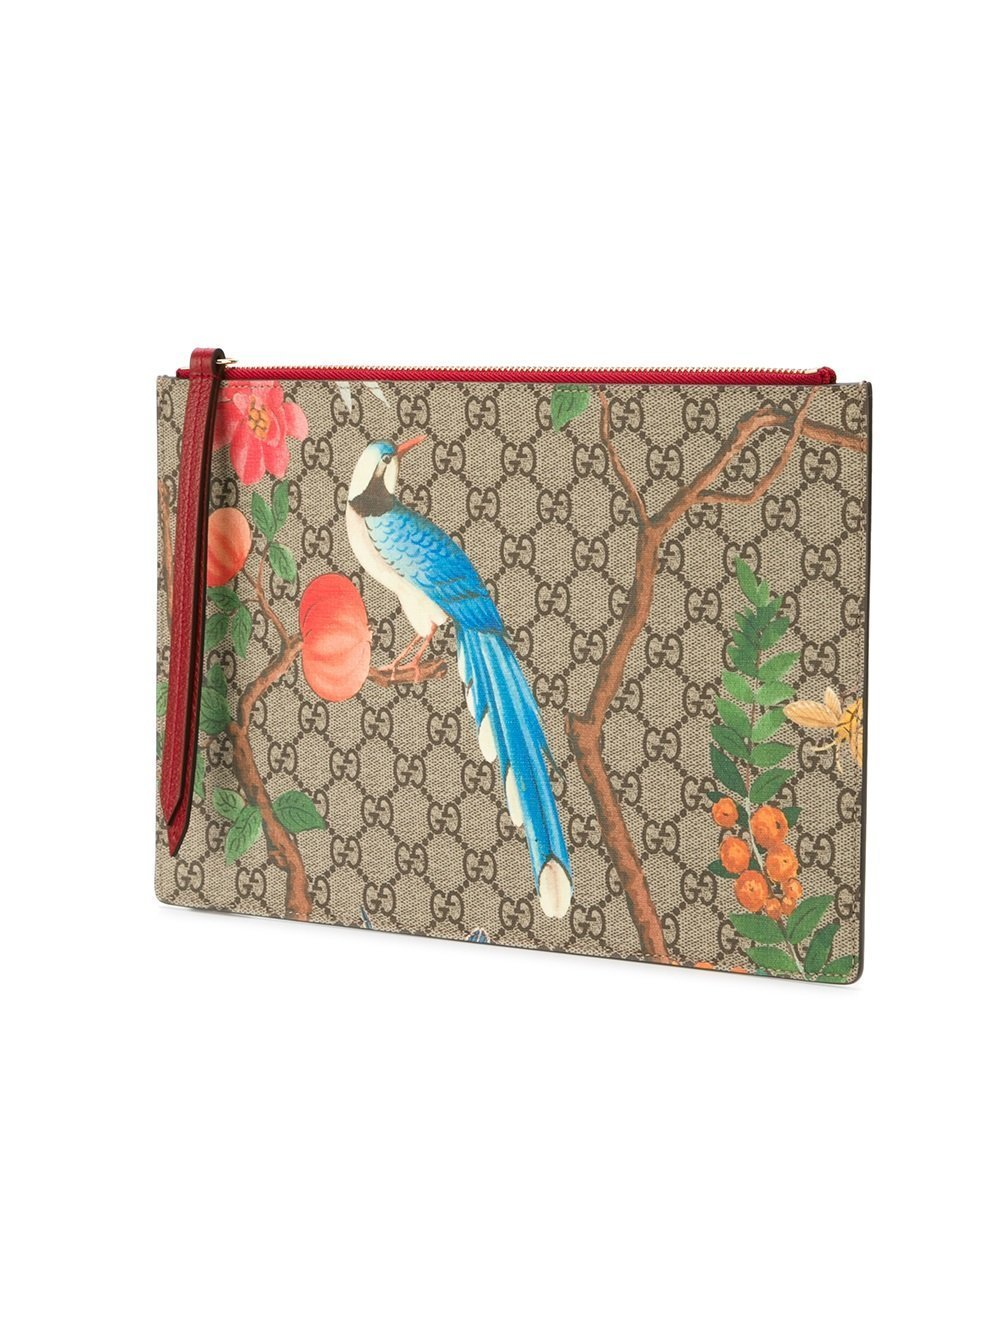 Gucci Tian ティアン クラッチバッグ